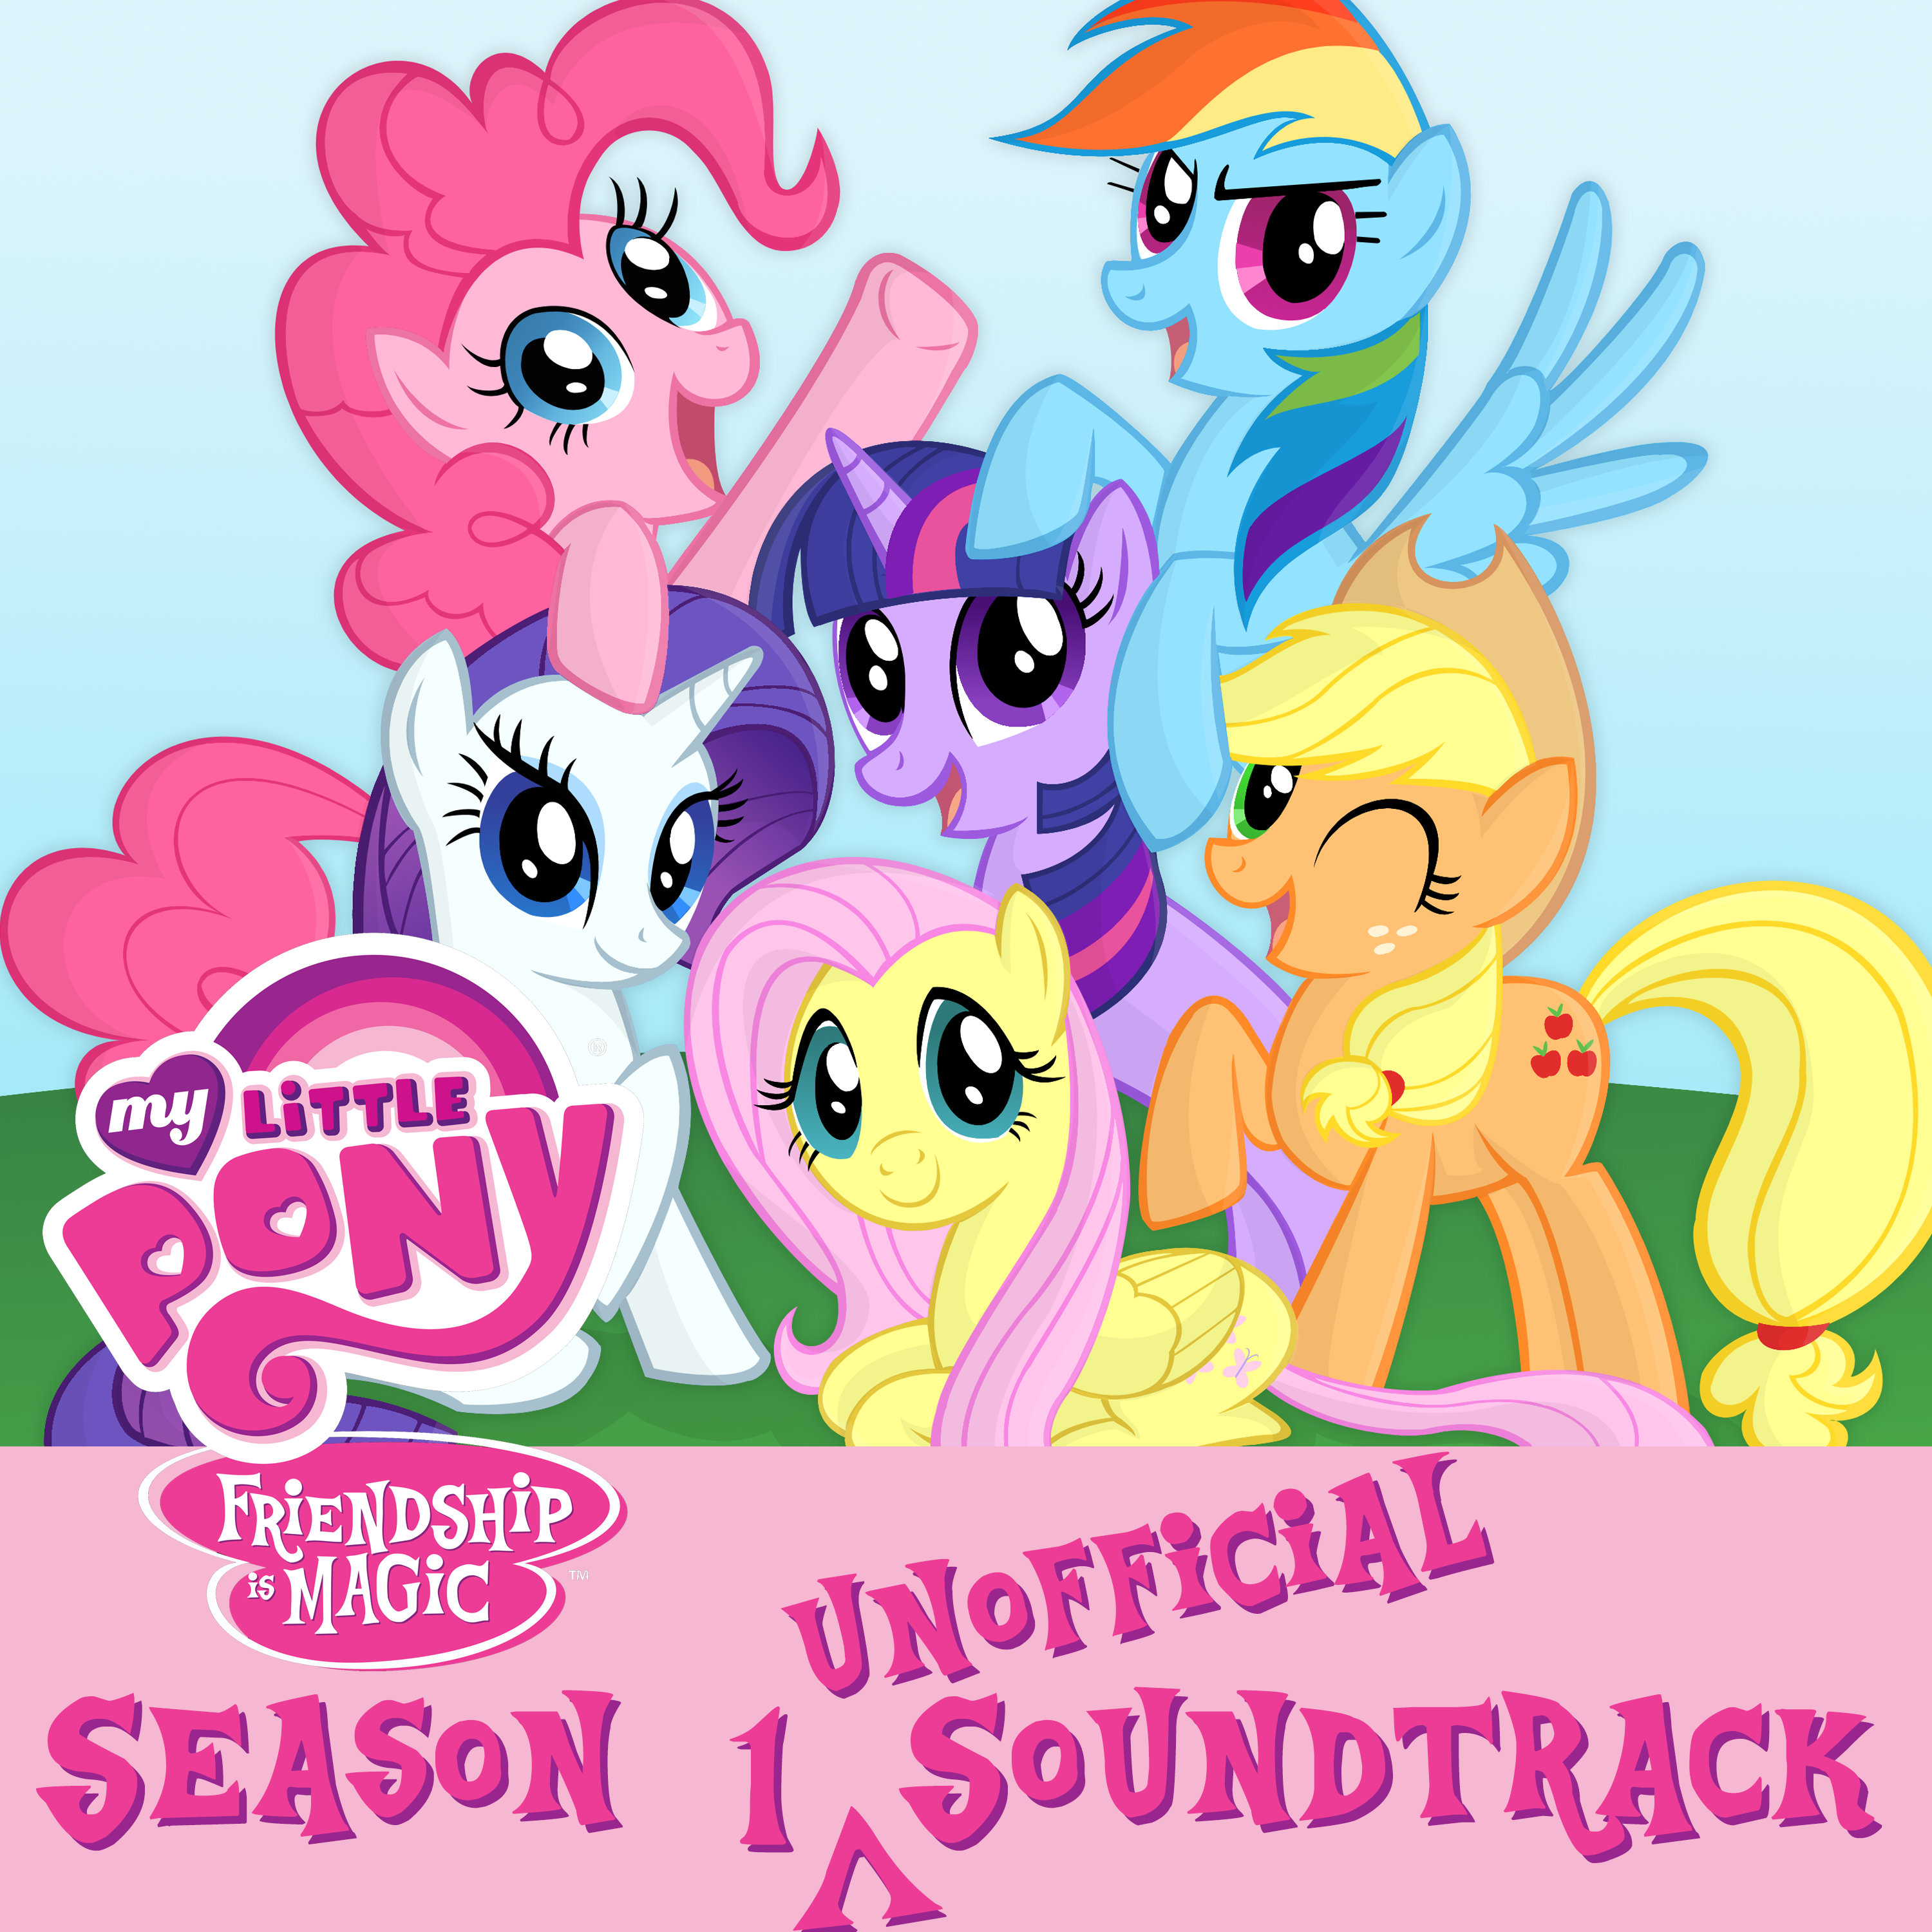 MLP Season 1 Unofficial Soundtrack Version 2.0 by DrZurnPhD